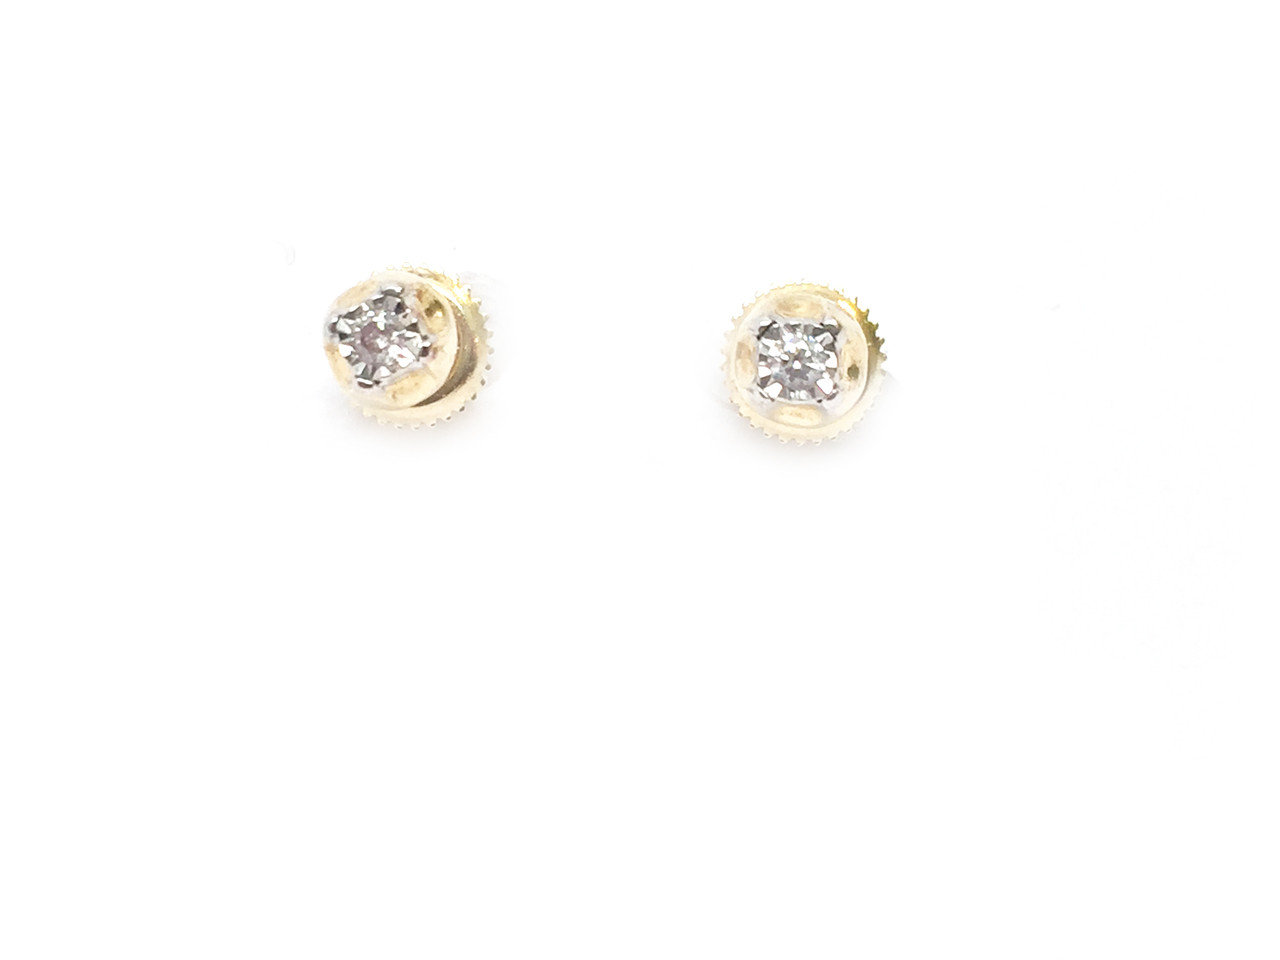 ye gold round kite p diamond earrings stud